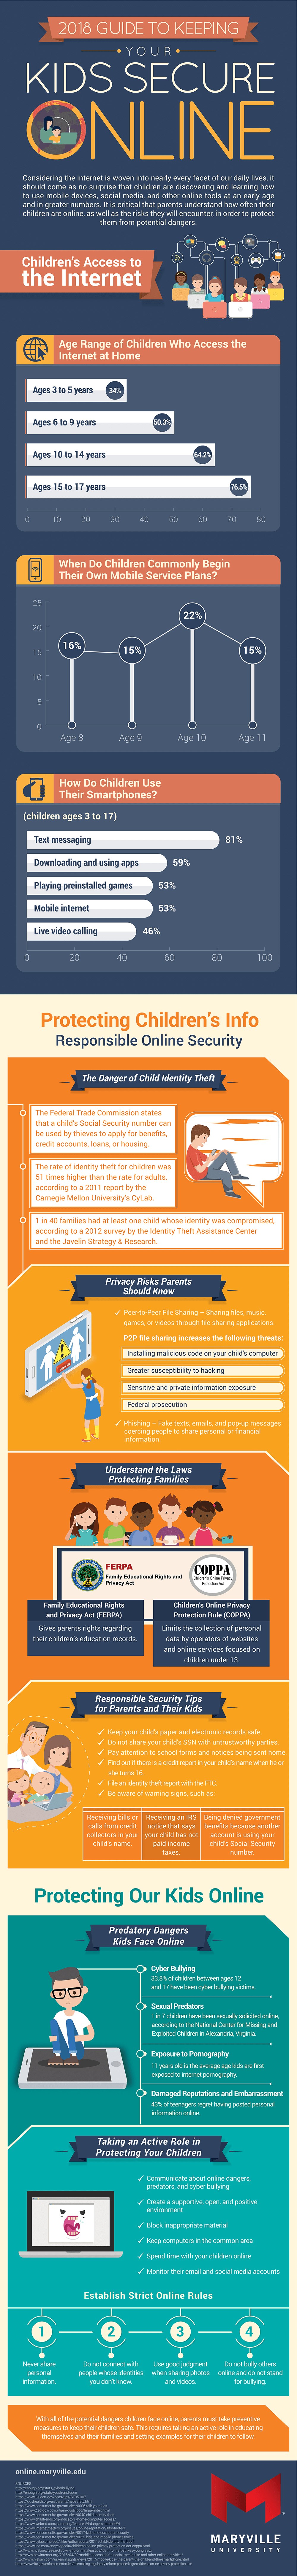 how to keep kids secure online